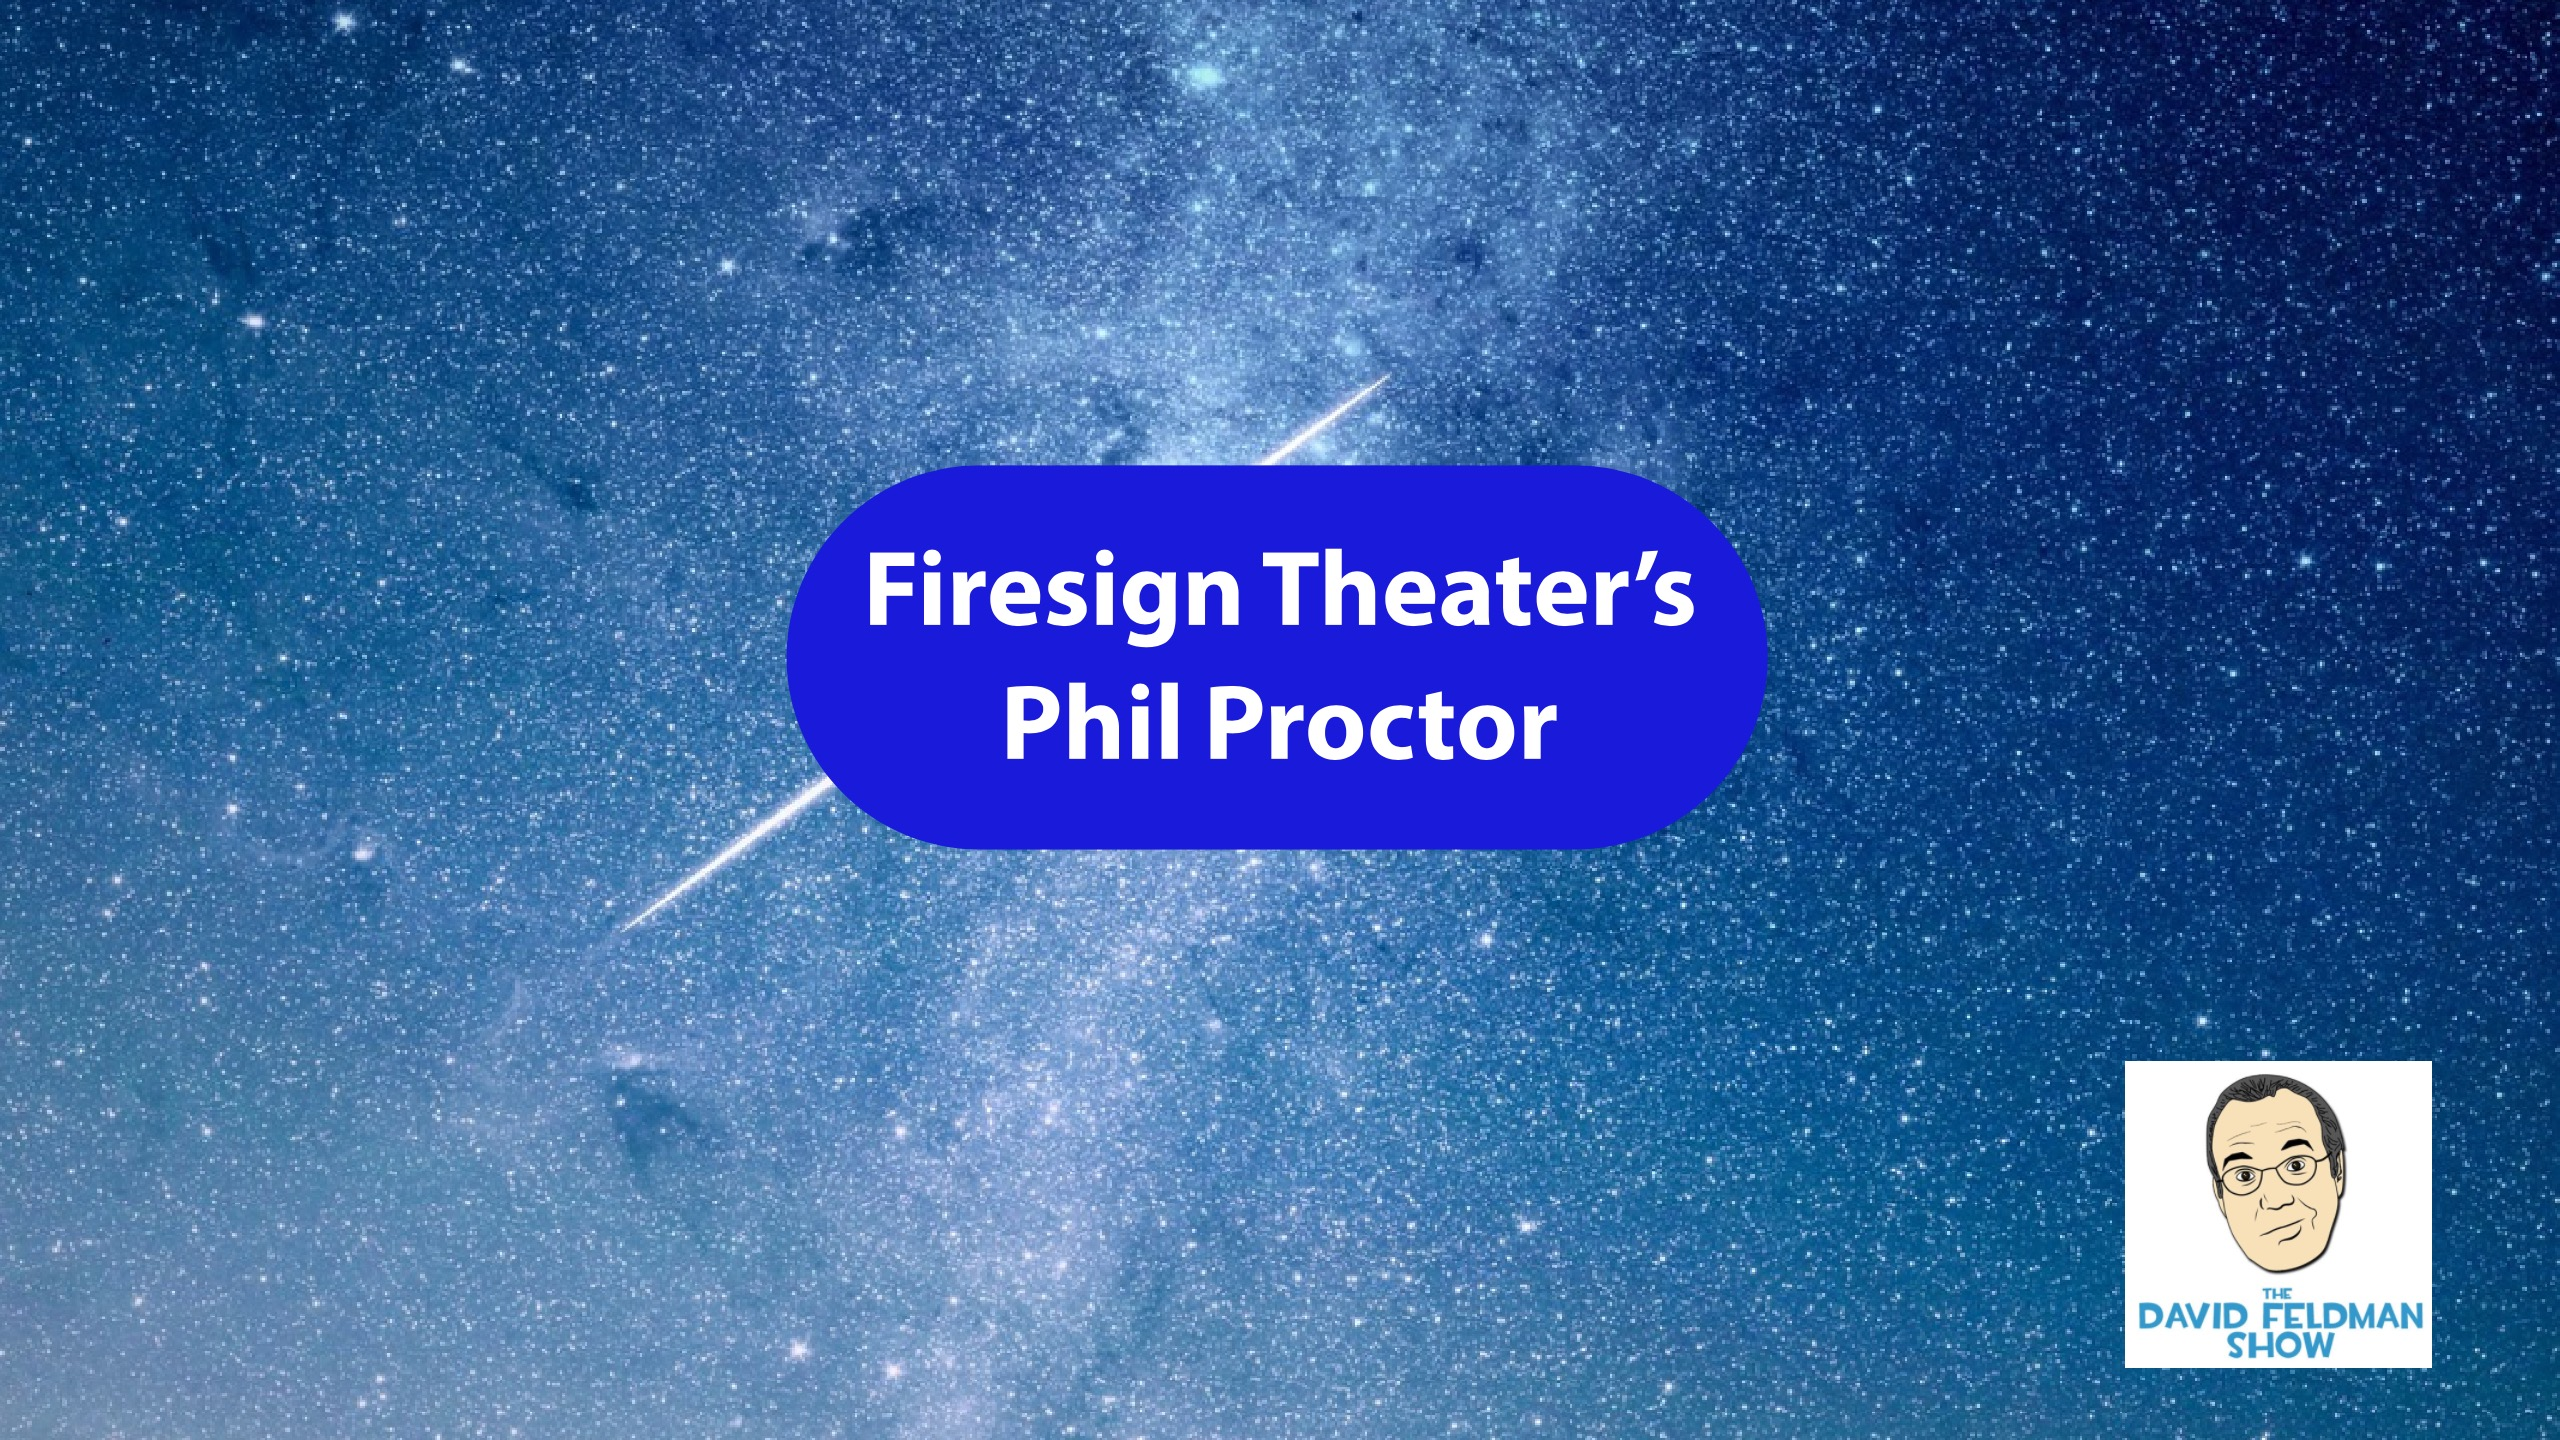 Firesign Theater's Phil Proctor